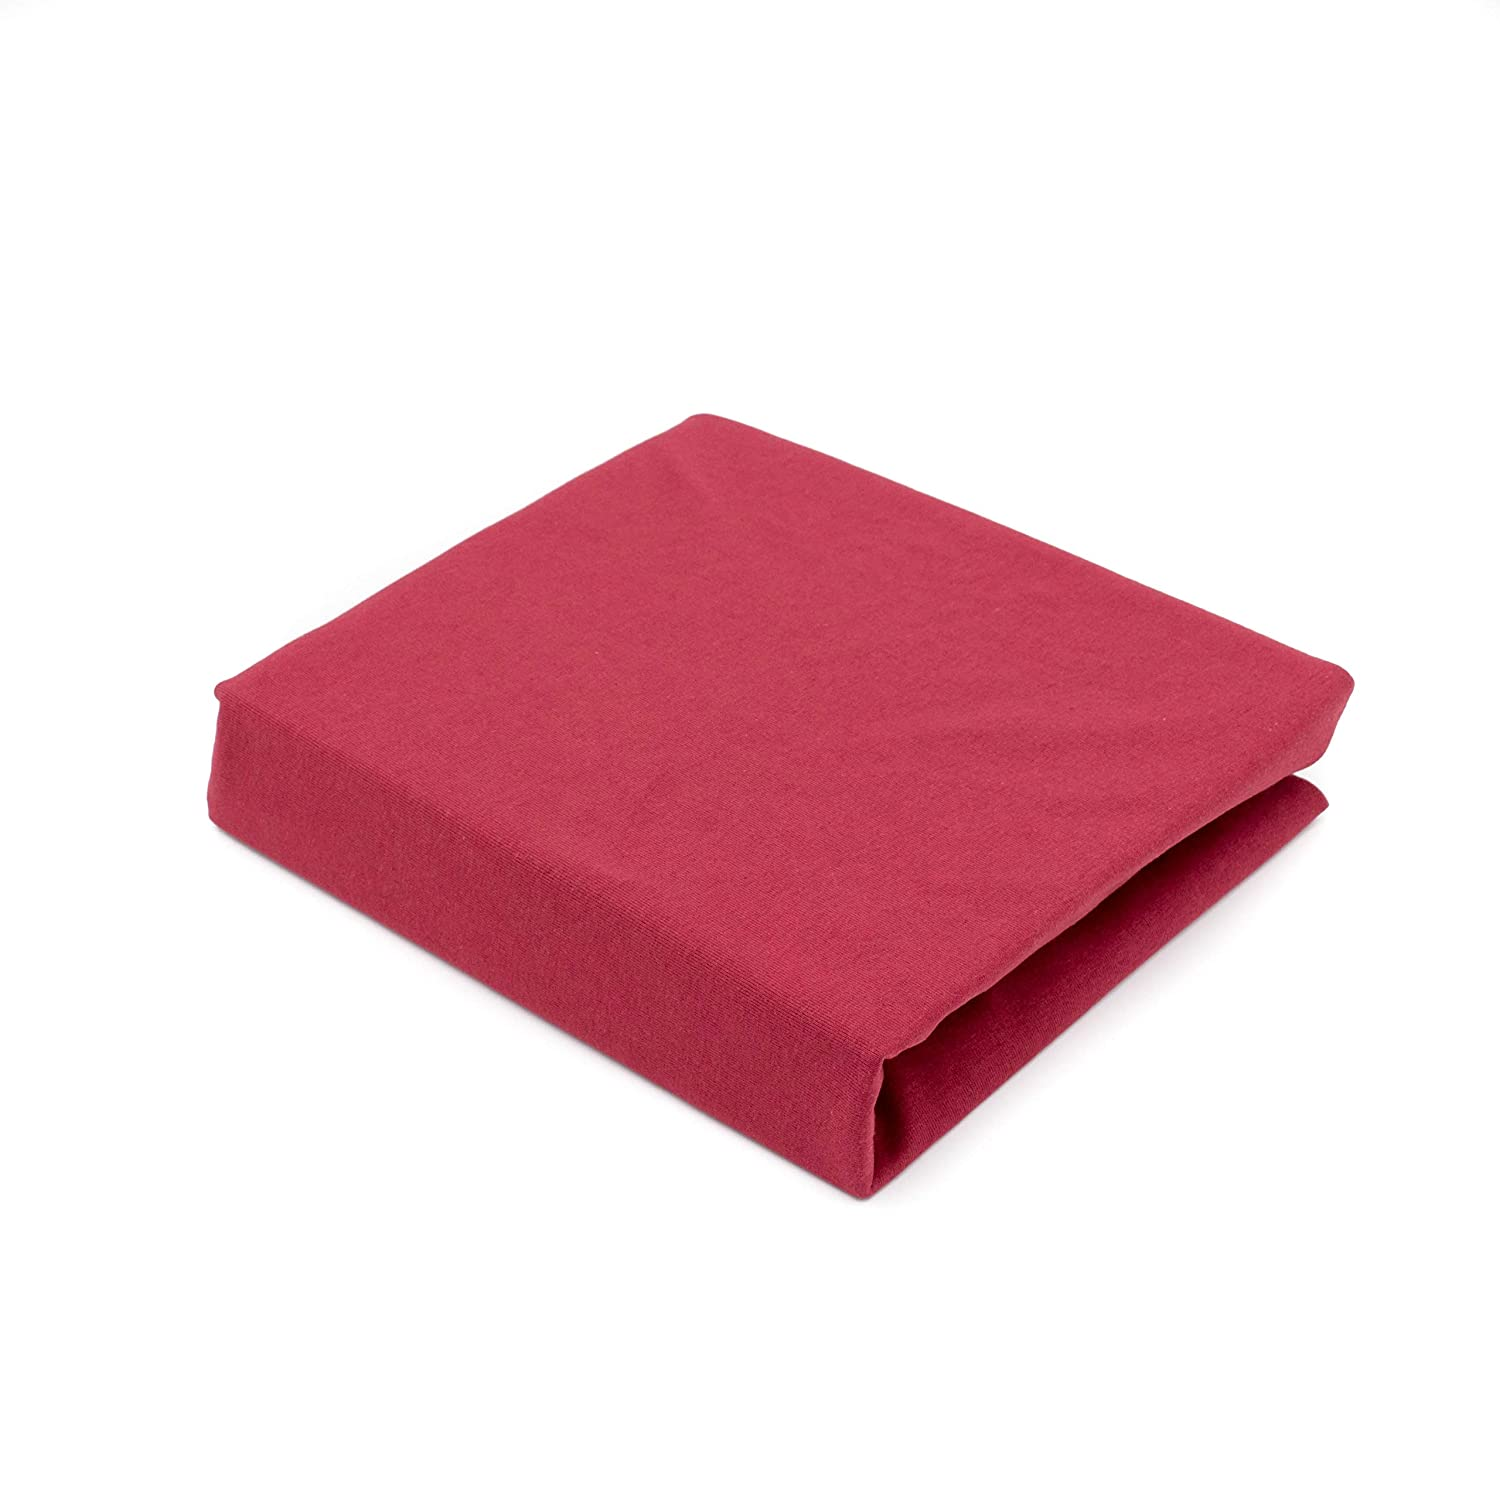 Dark Red Cotton Jersey Cot Bed Fitted Sheets,70 x 140 cm